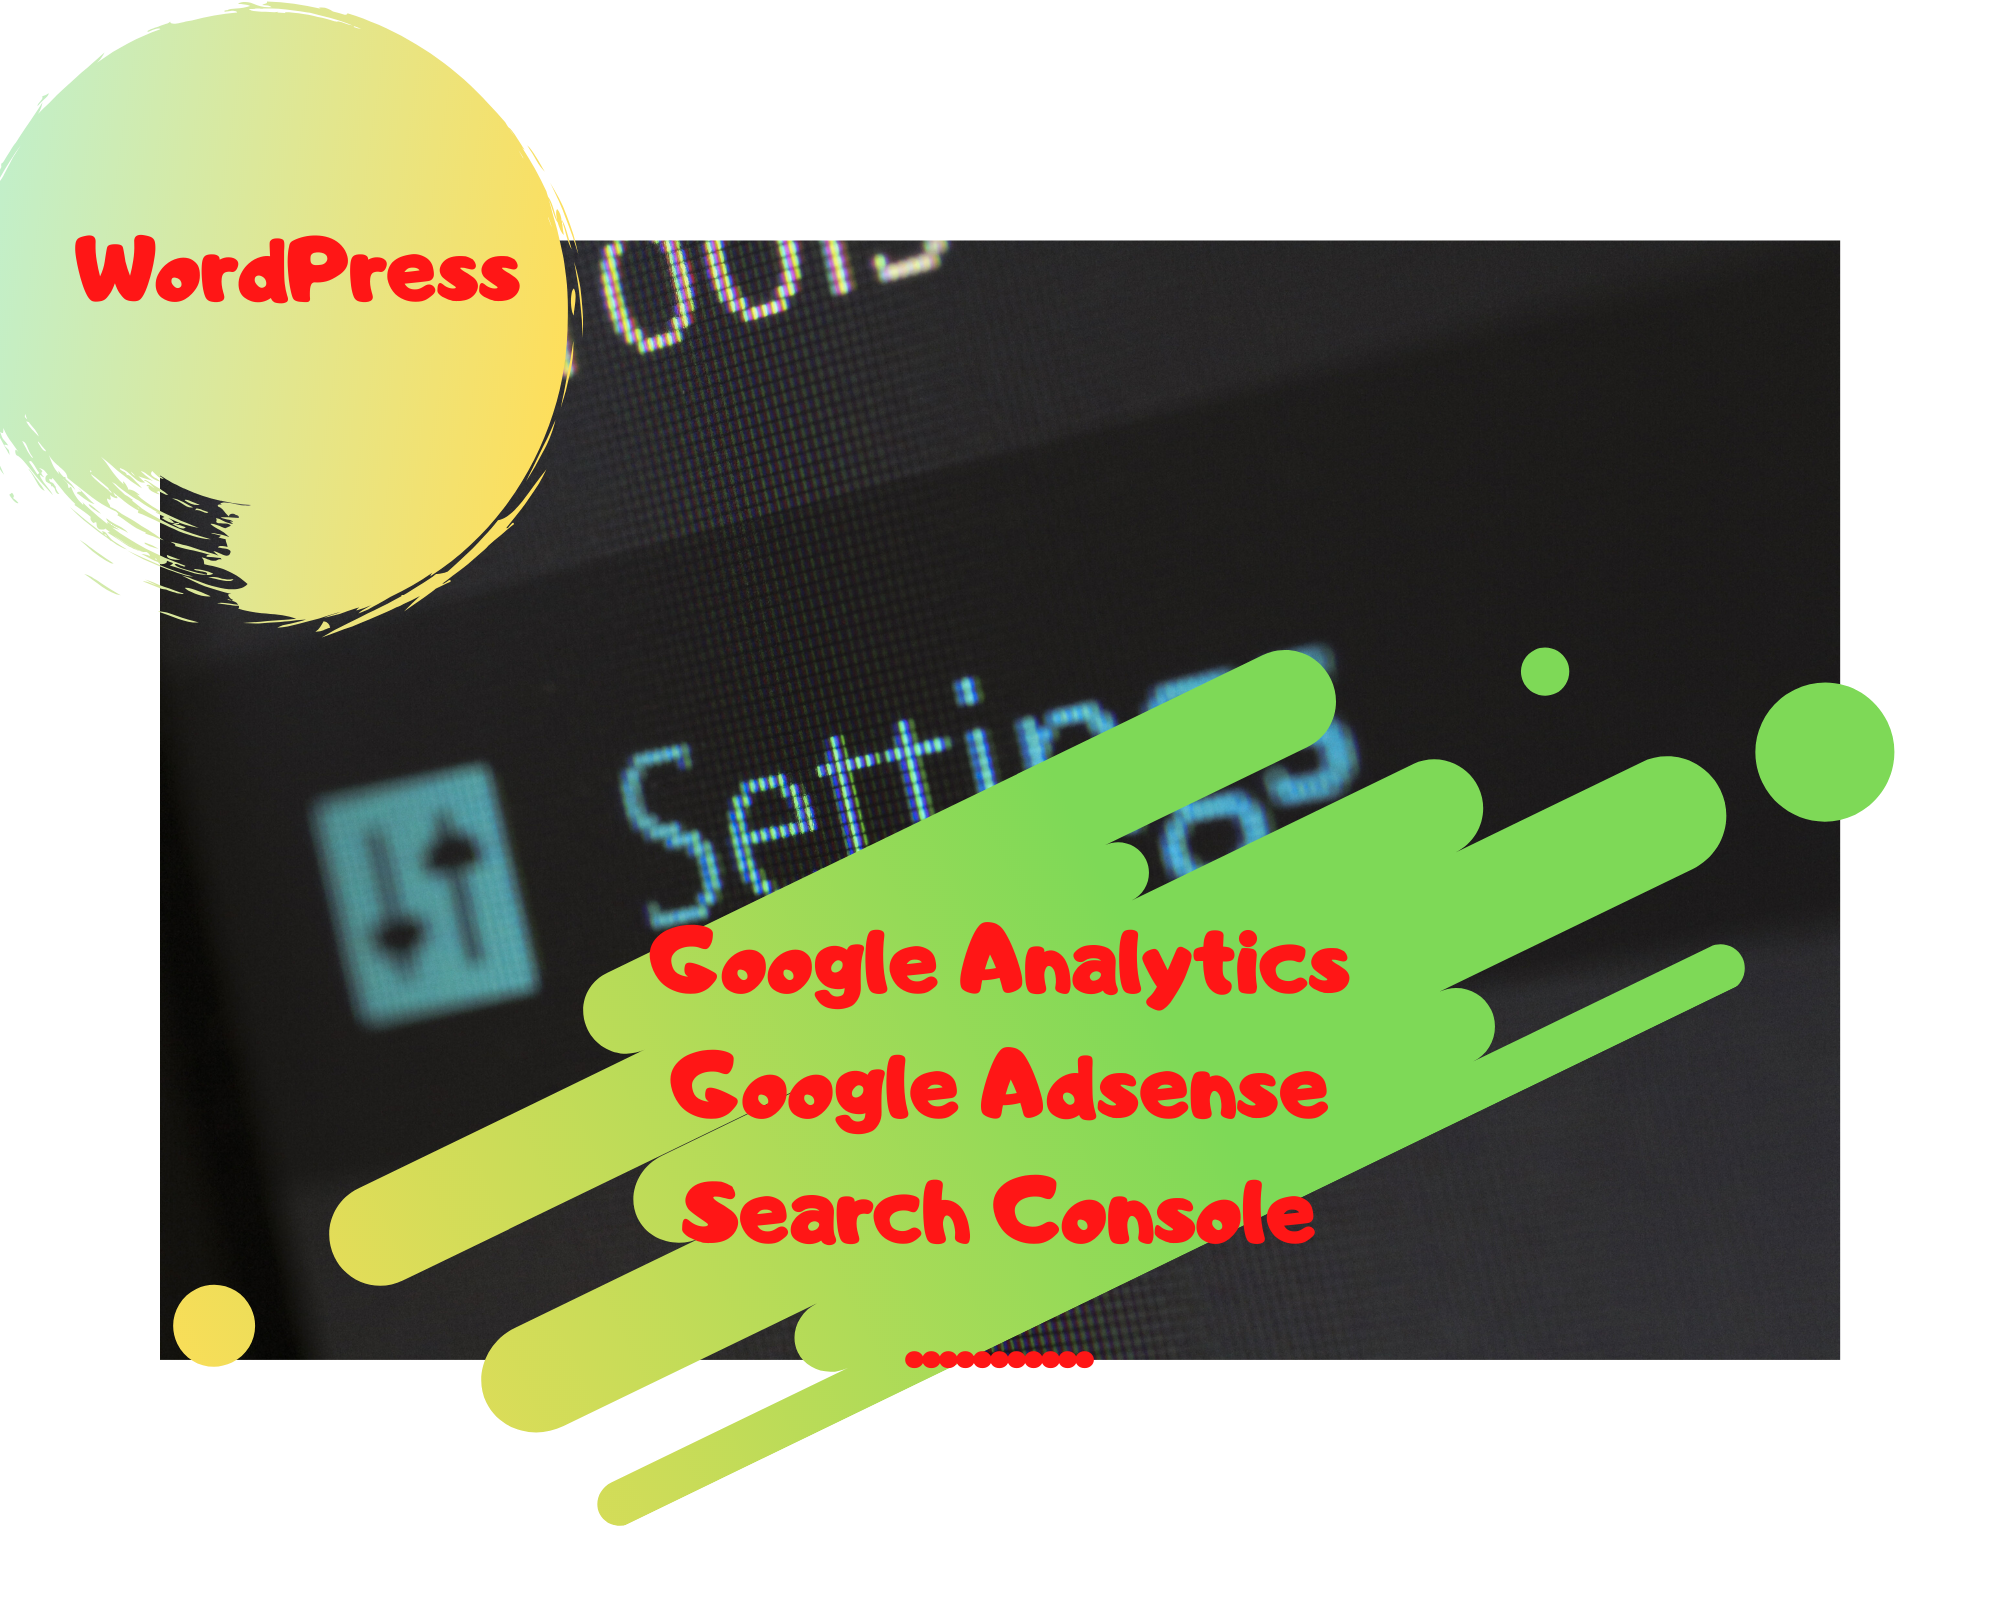 Comment intégrer Google Analytics & Adsense & Search Console & PageSpeed Insights  WordPress  ?